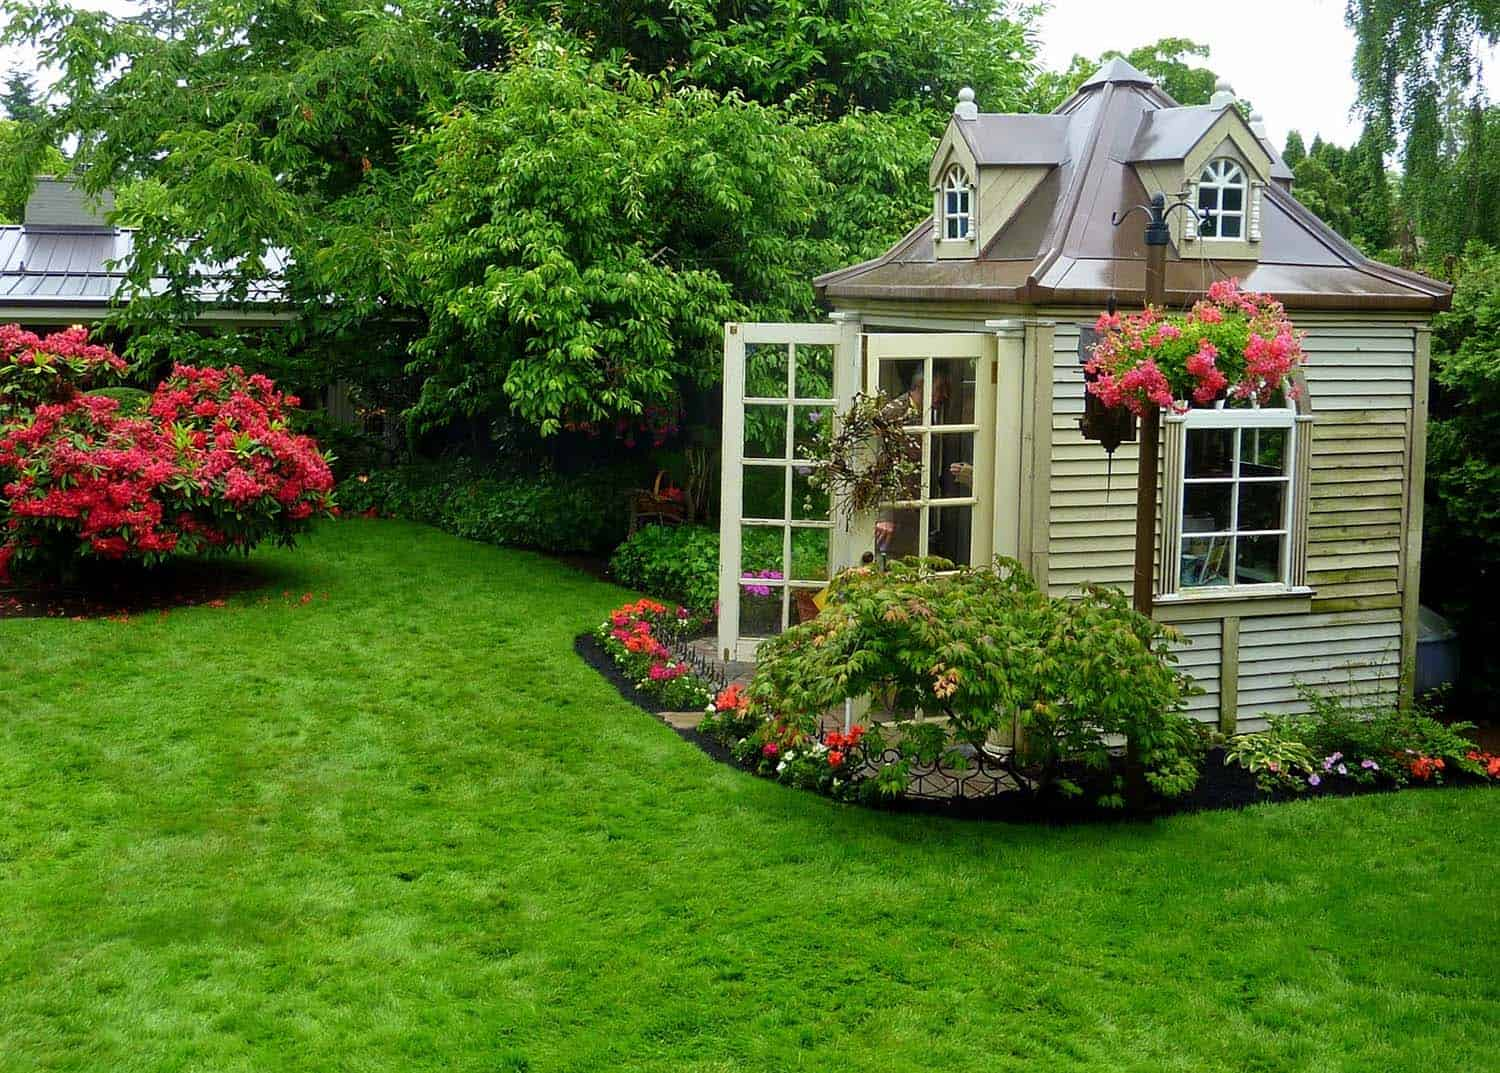 Garden Shed Ideas-31-1 Kindesign